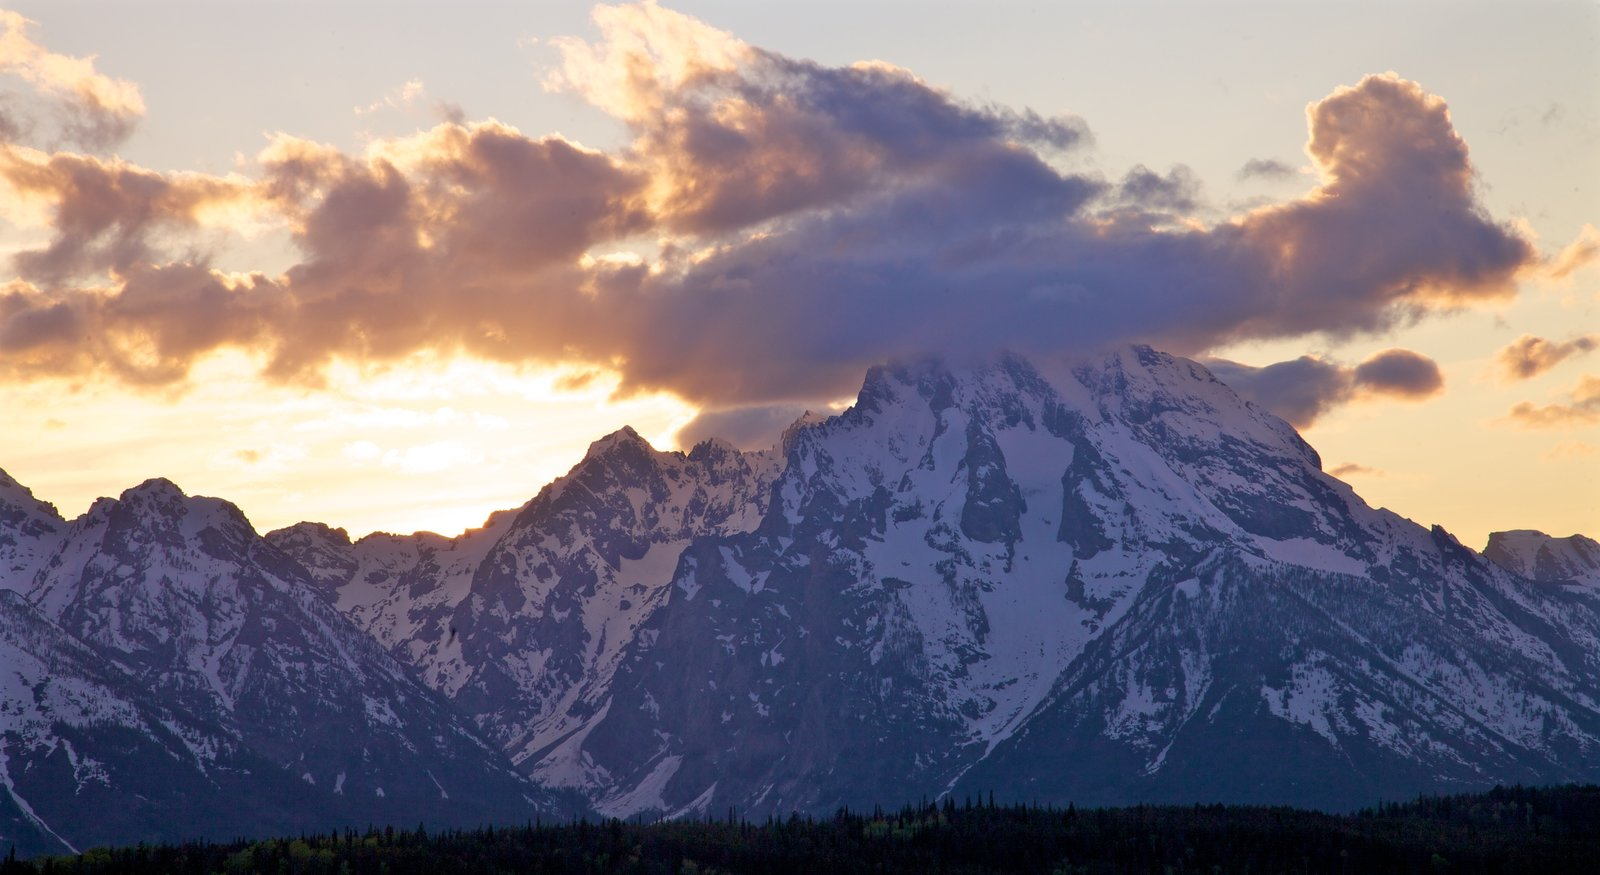 Grand Teton National Park caracterizando montanhas, um pôr do sol e neve